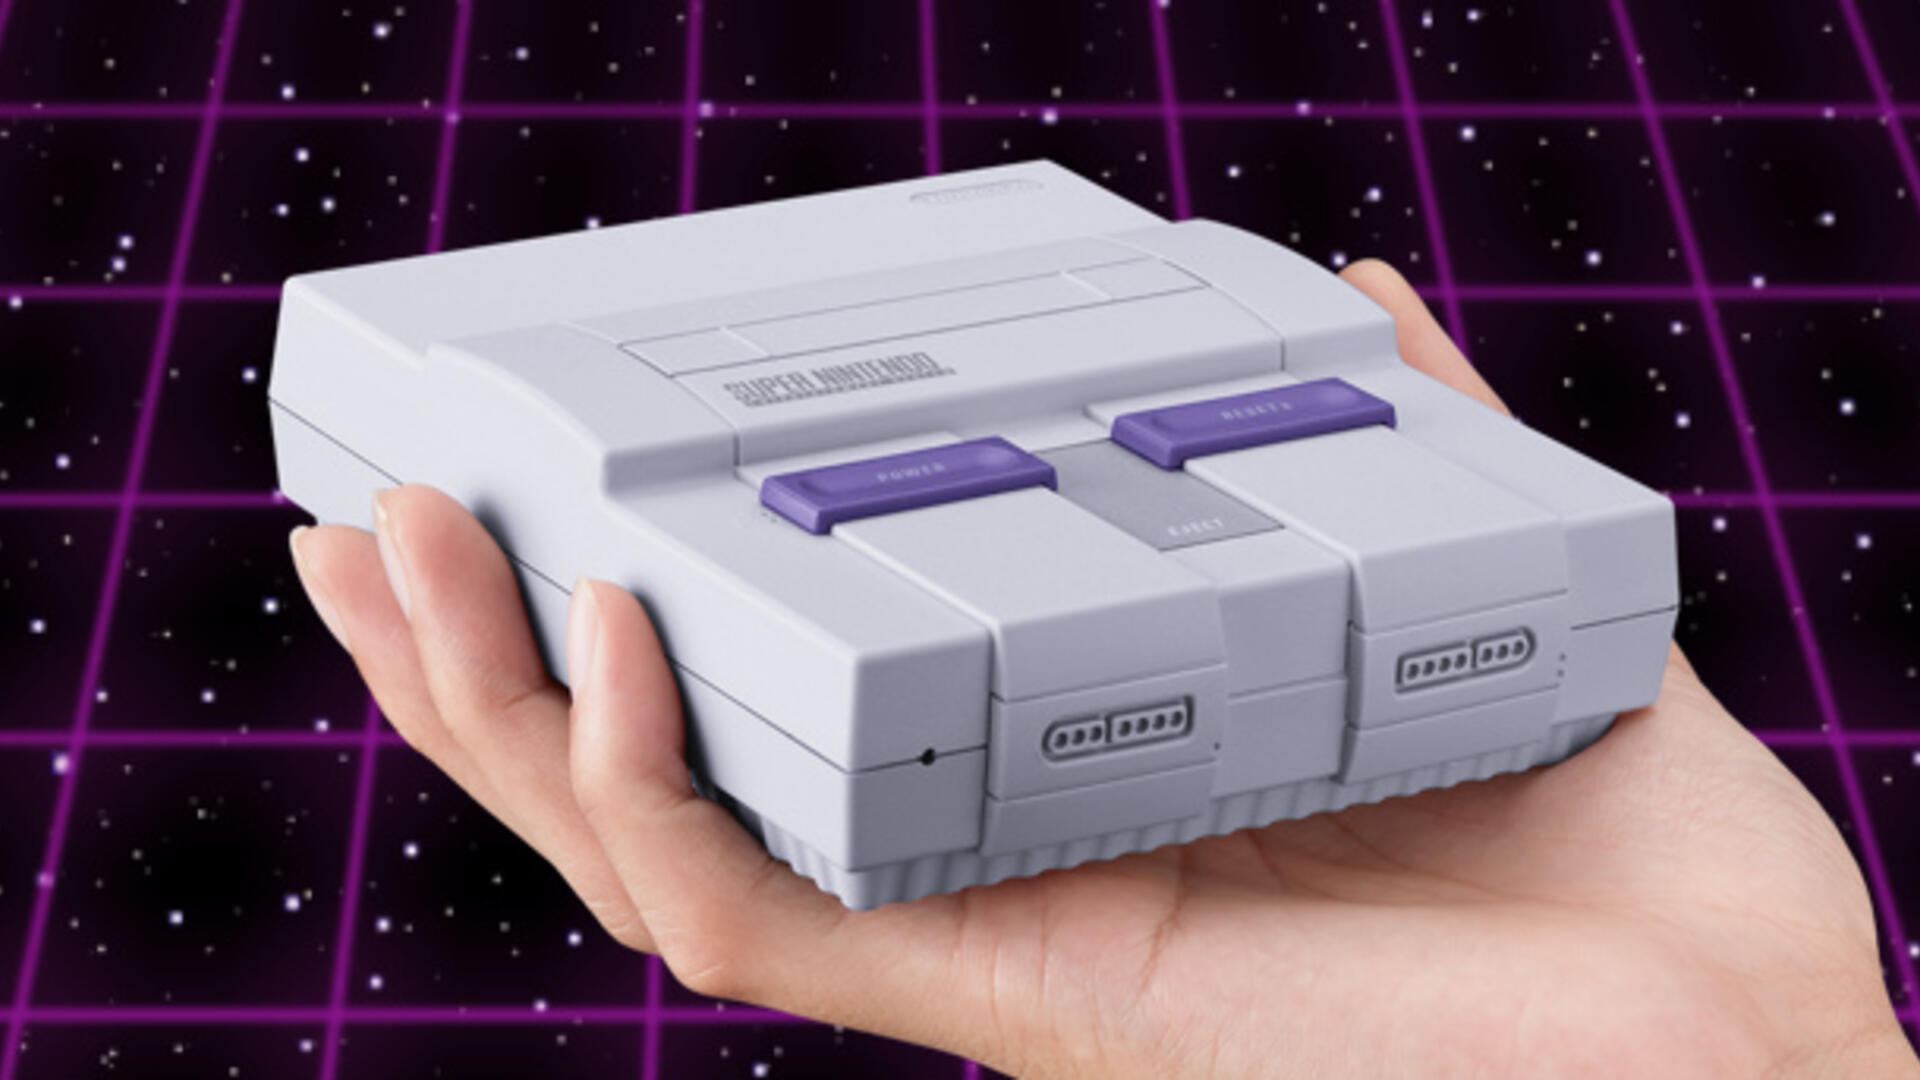 PSA: GameStop's Standard SNES Classic Pre-Orders Are Sold Out But You Can Still Pre-Order a Bundle